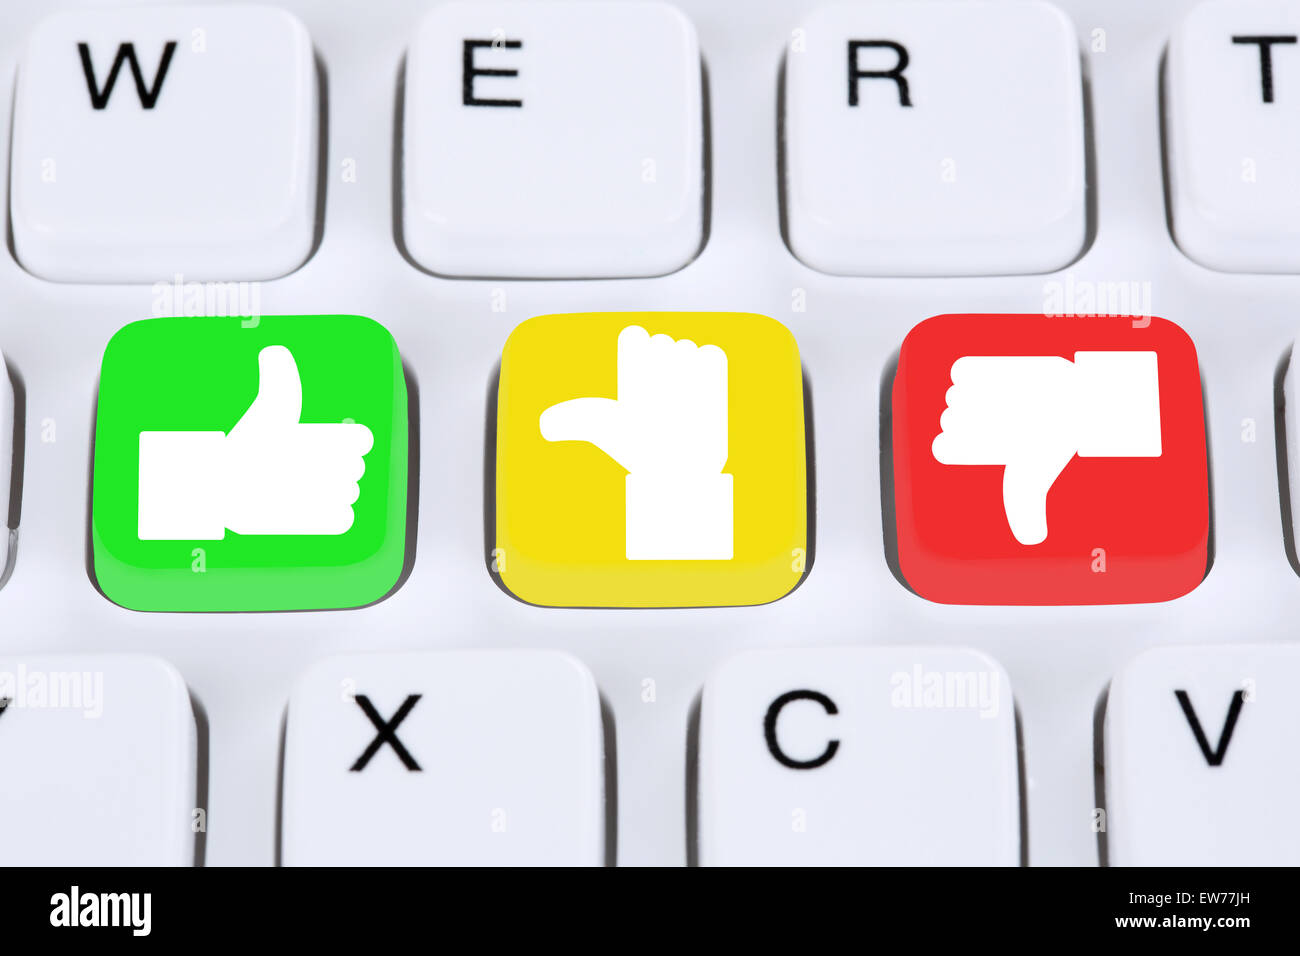 Choosing customer service quality feedback with thumbs up and down on computer keyboard - Stock Image